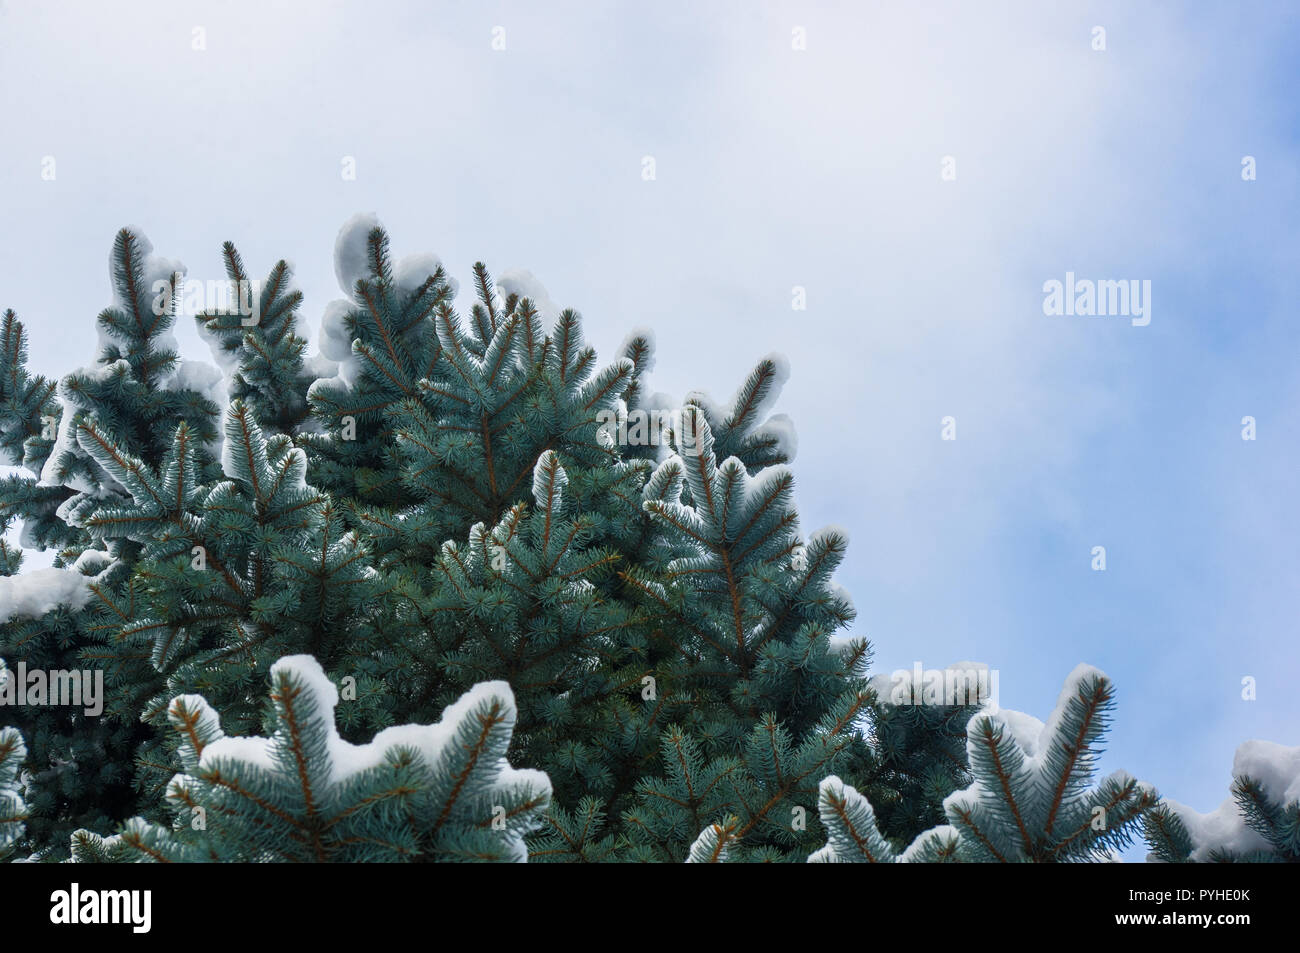 Green Fluffy Fir Tree Branch In The Snow Christmas Wallpaper Concept